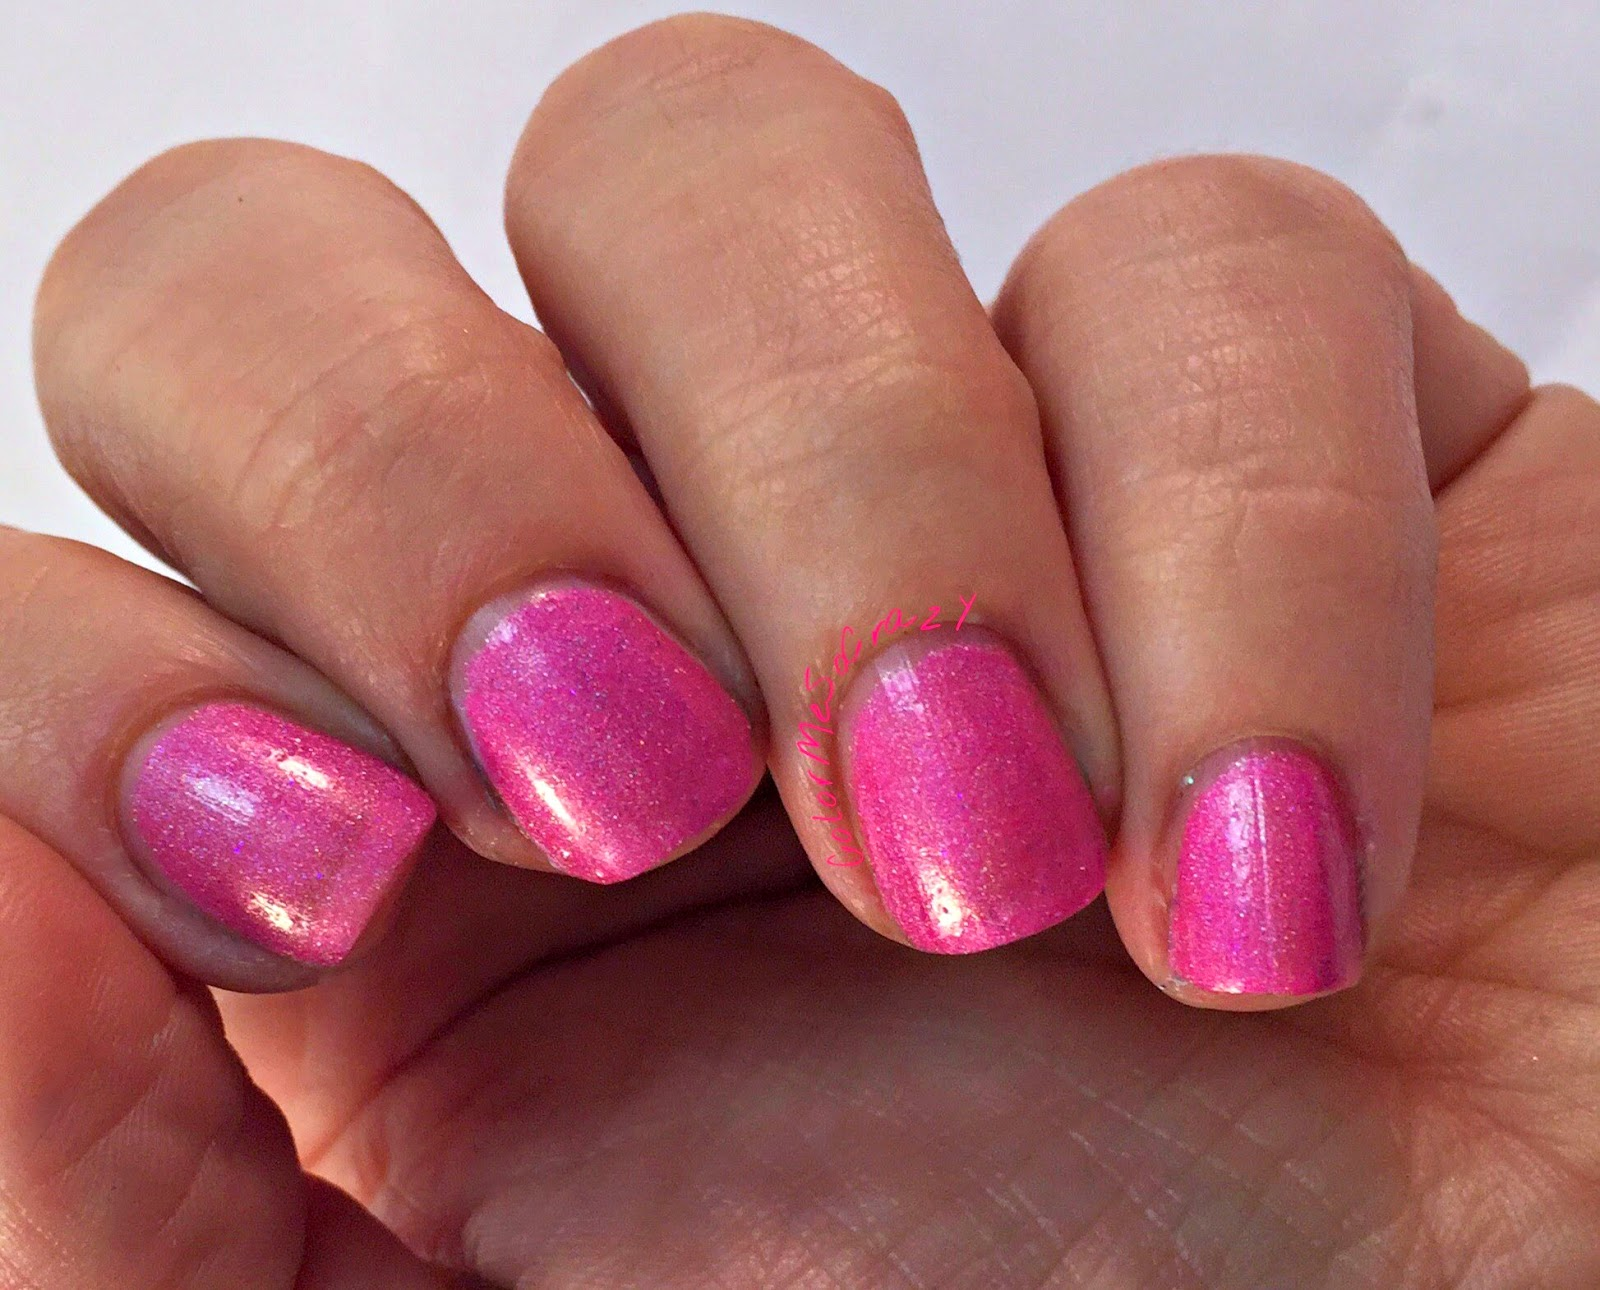 begl, blue eyed girl lacquer, nail polish, pink, spark in the dark, she's electricity, pink indie polish